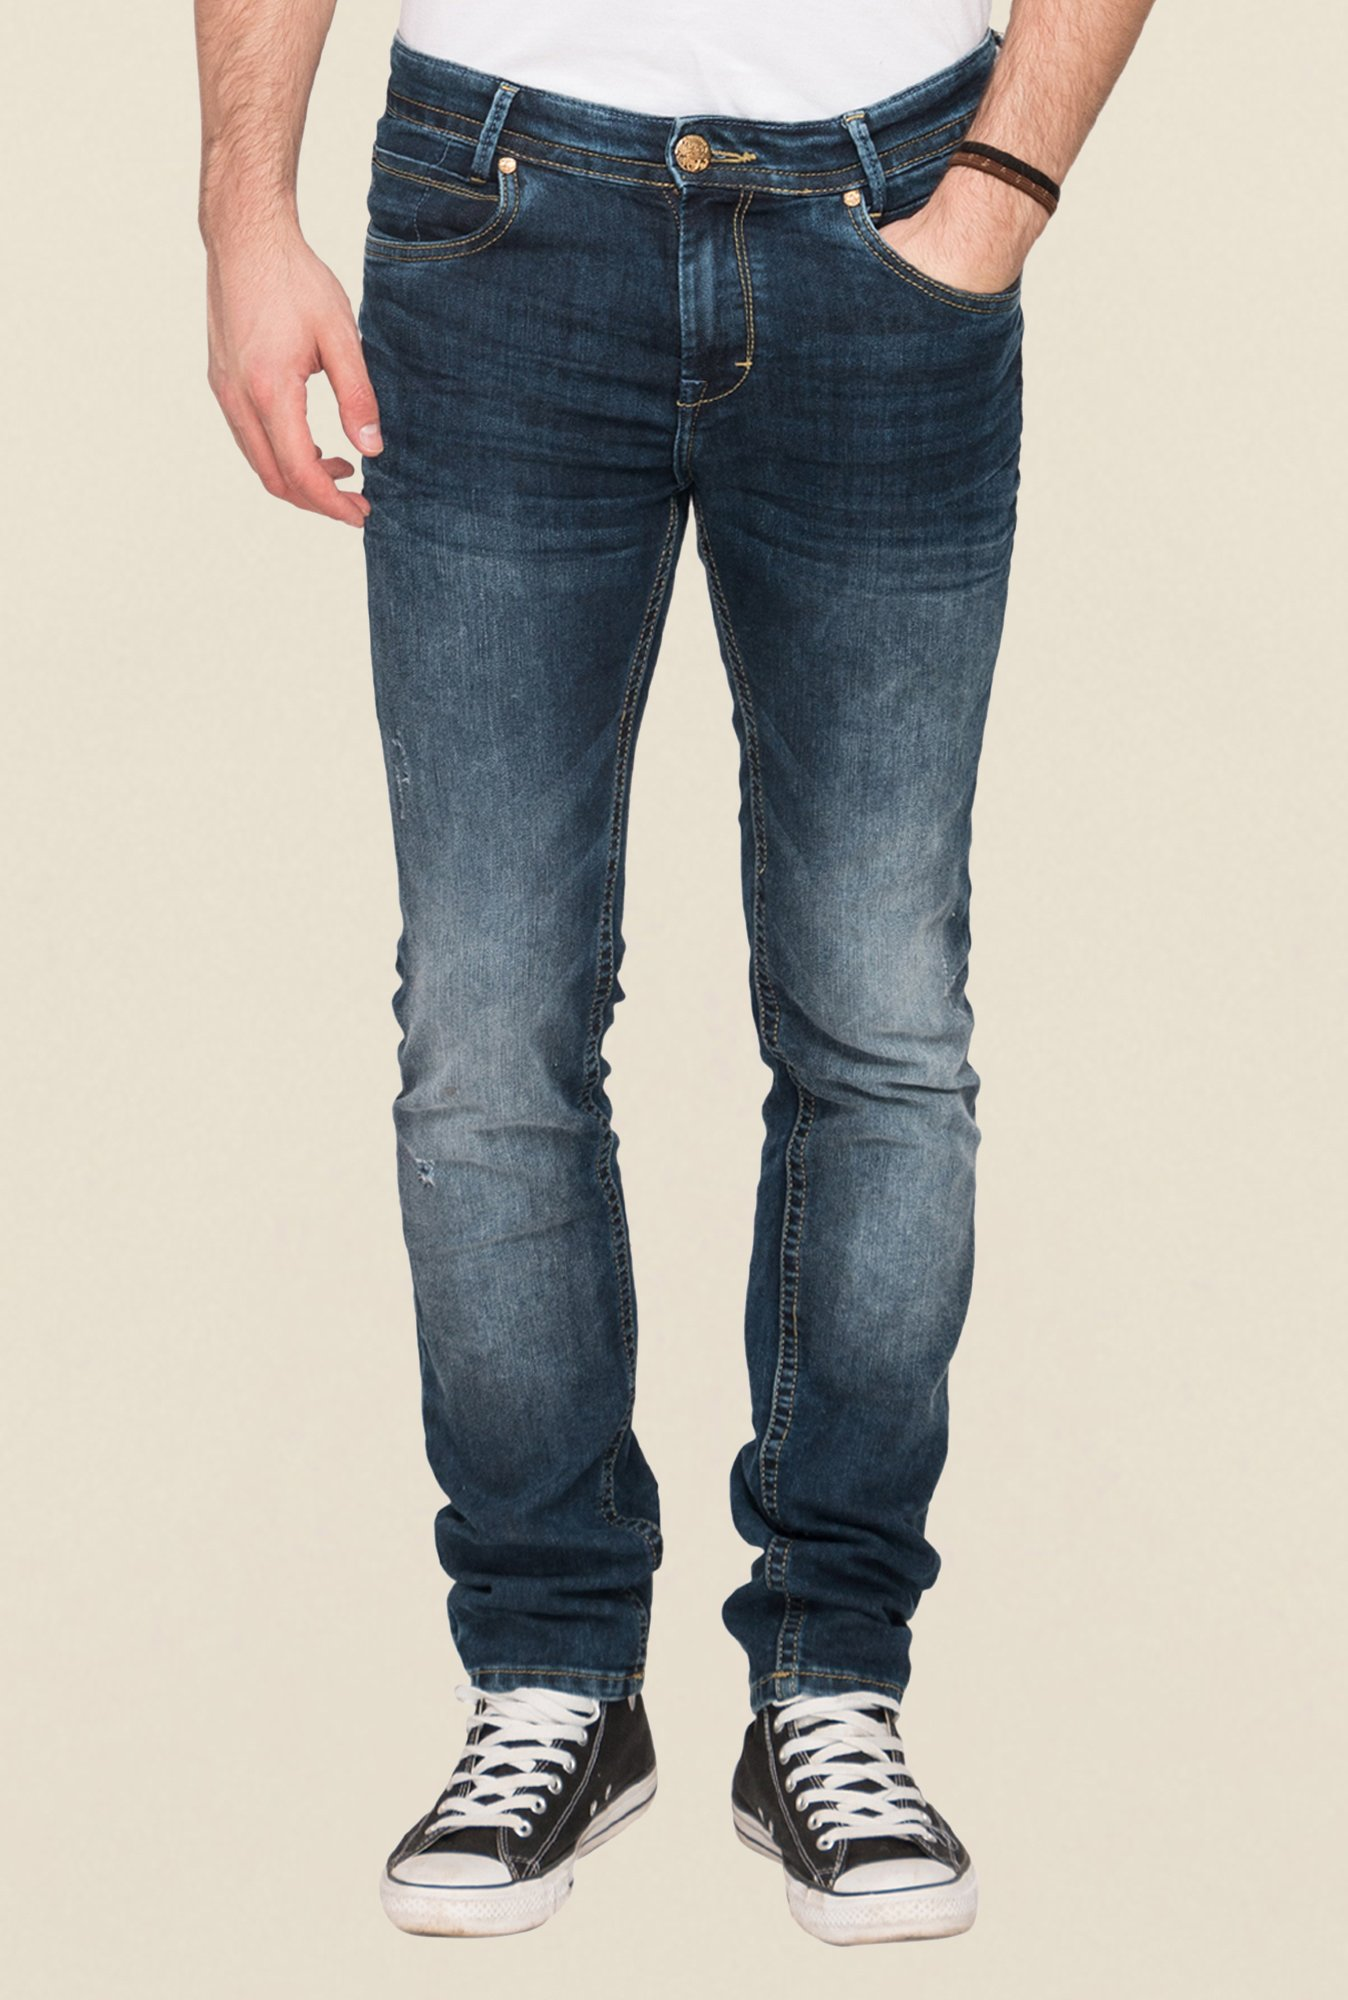 Mufti Navy Acid Washed Jeans